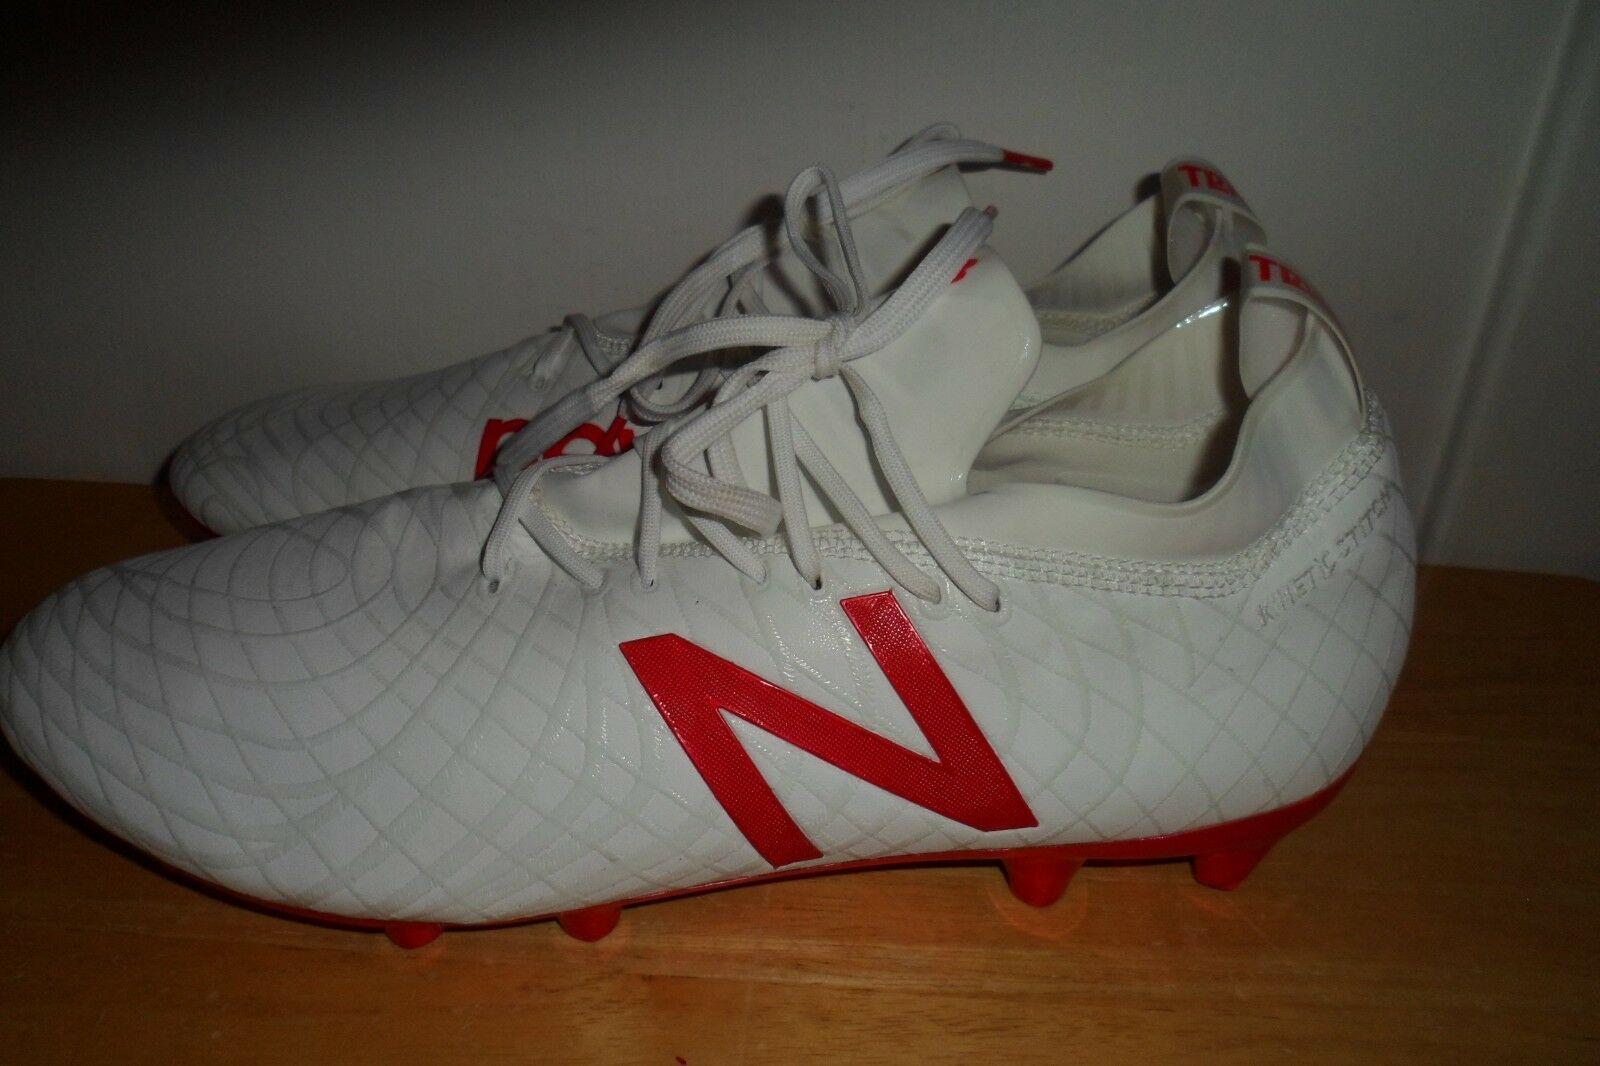 2018 New Balance TAKELA PRO FG MSTPFWF1 Größe 11.5 D Soccer Football Cleats GUC